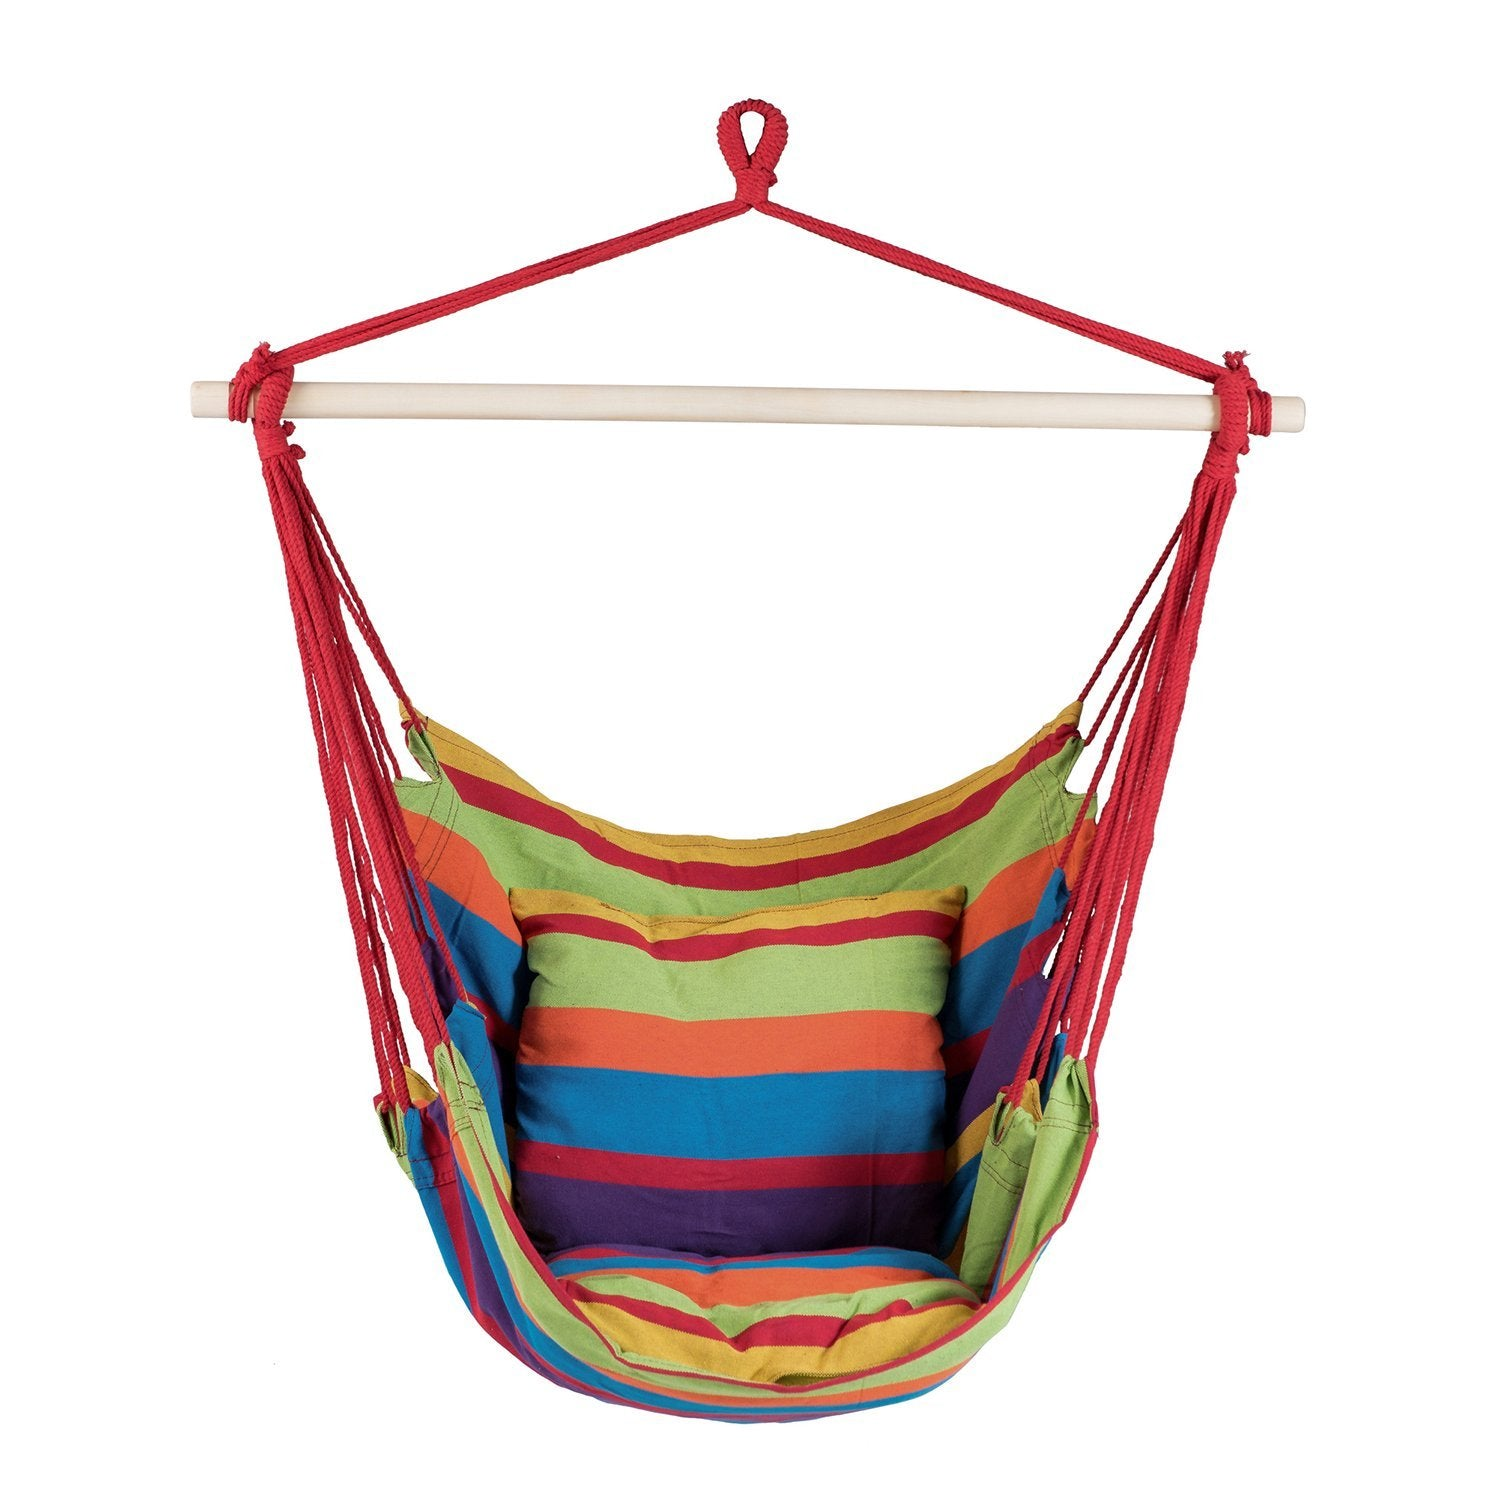 lbs hammock garden get stand quotations on deals s buy guides shopping tylor double moon find with steel desert capacity cheap